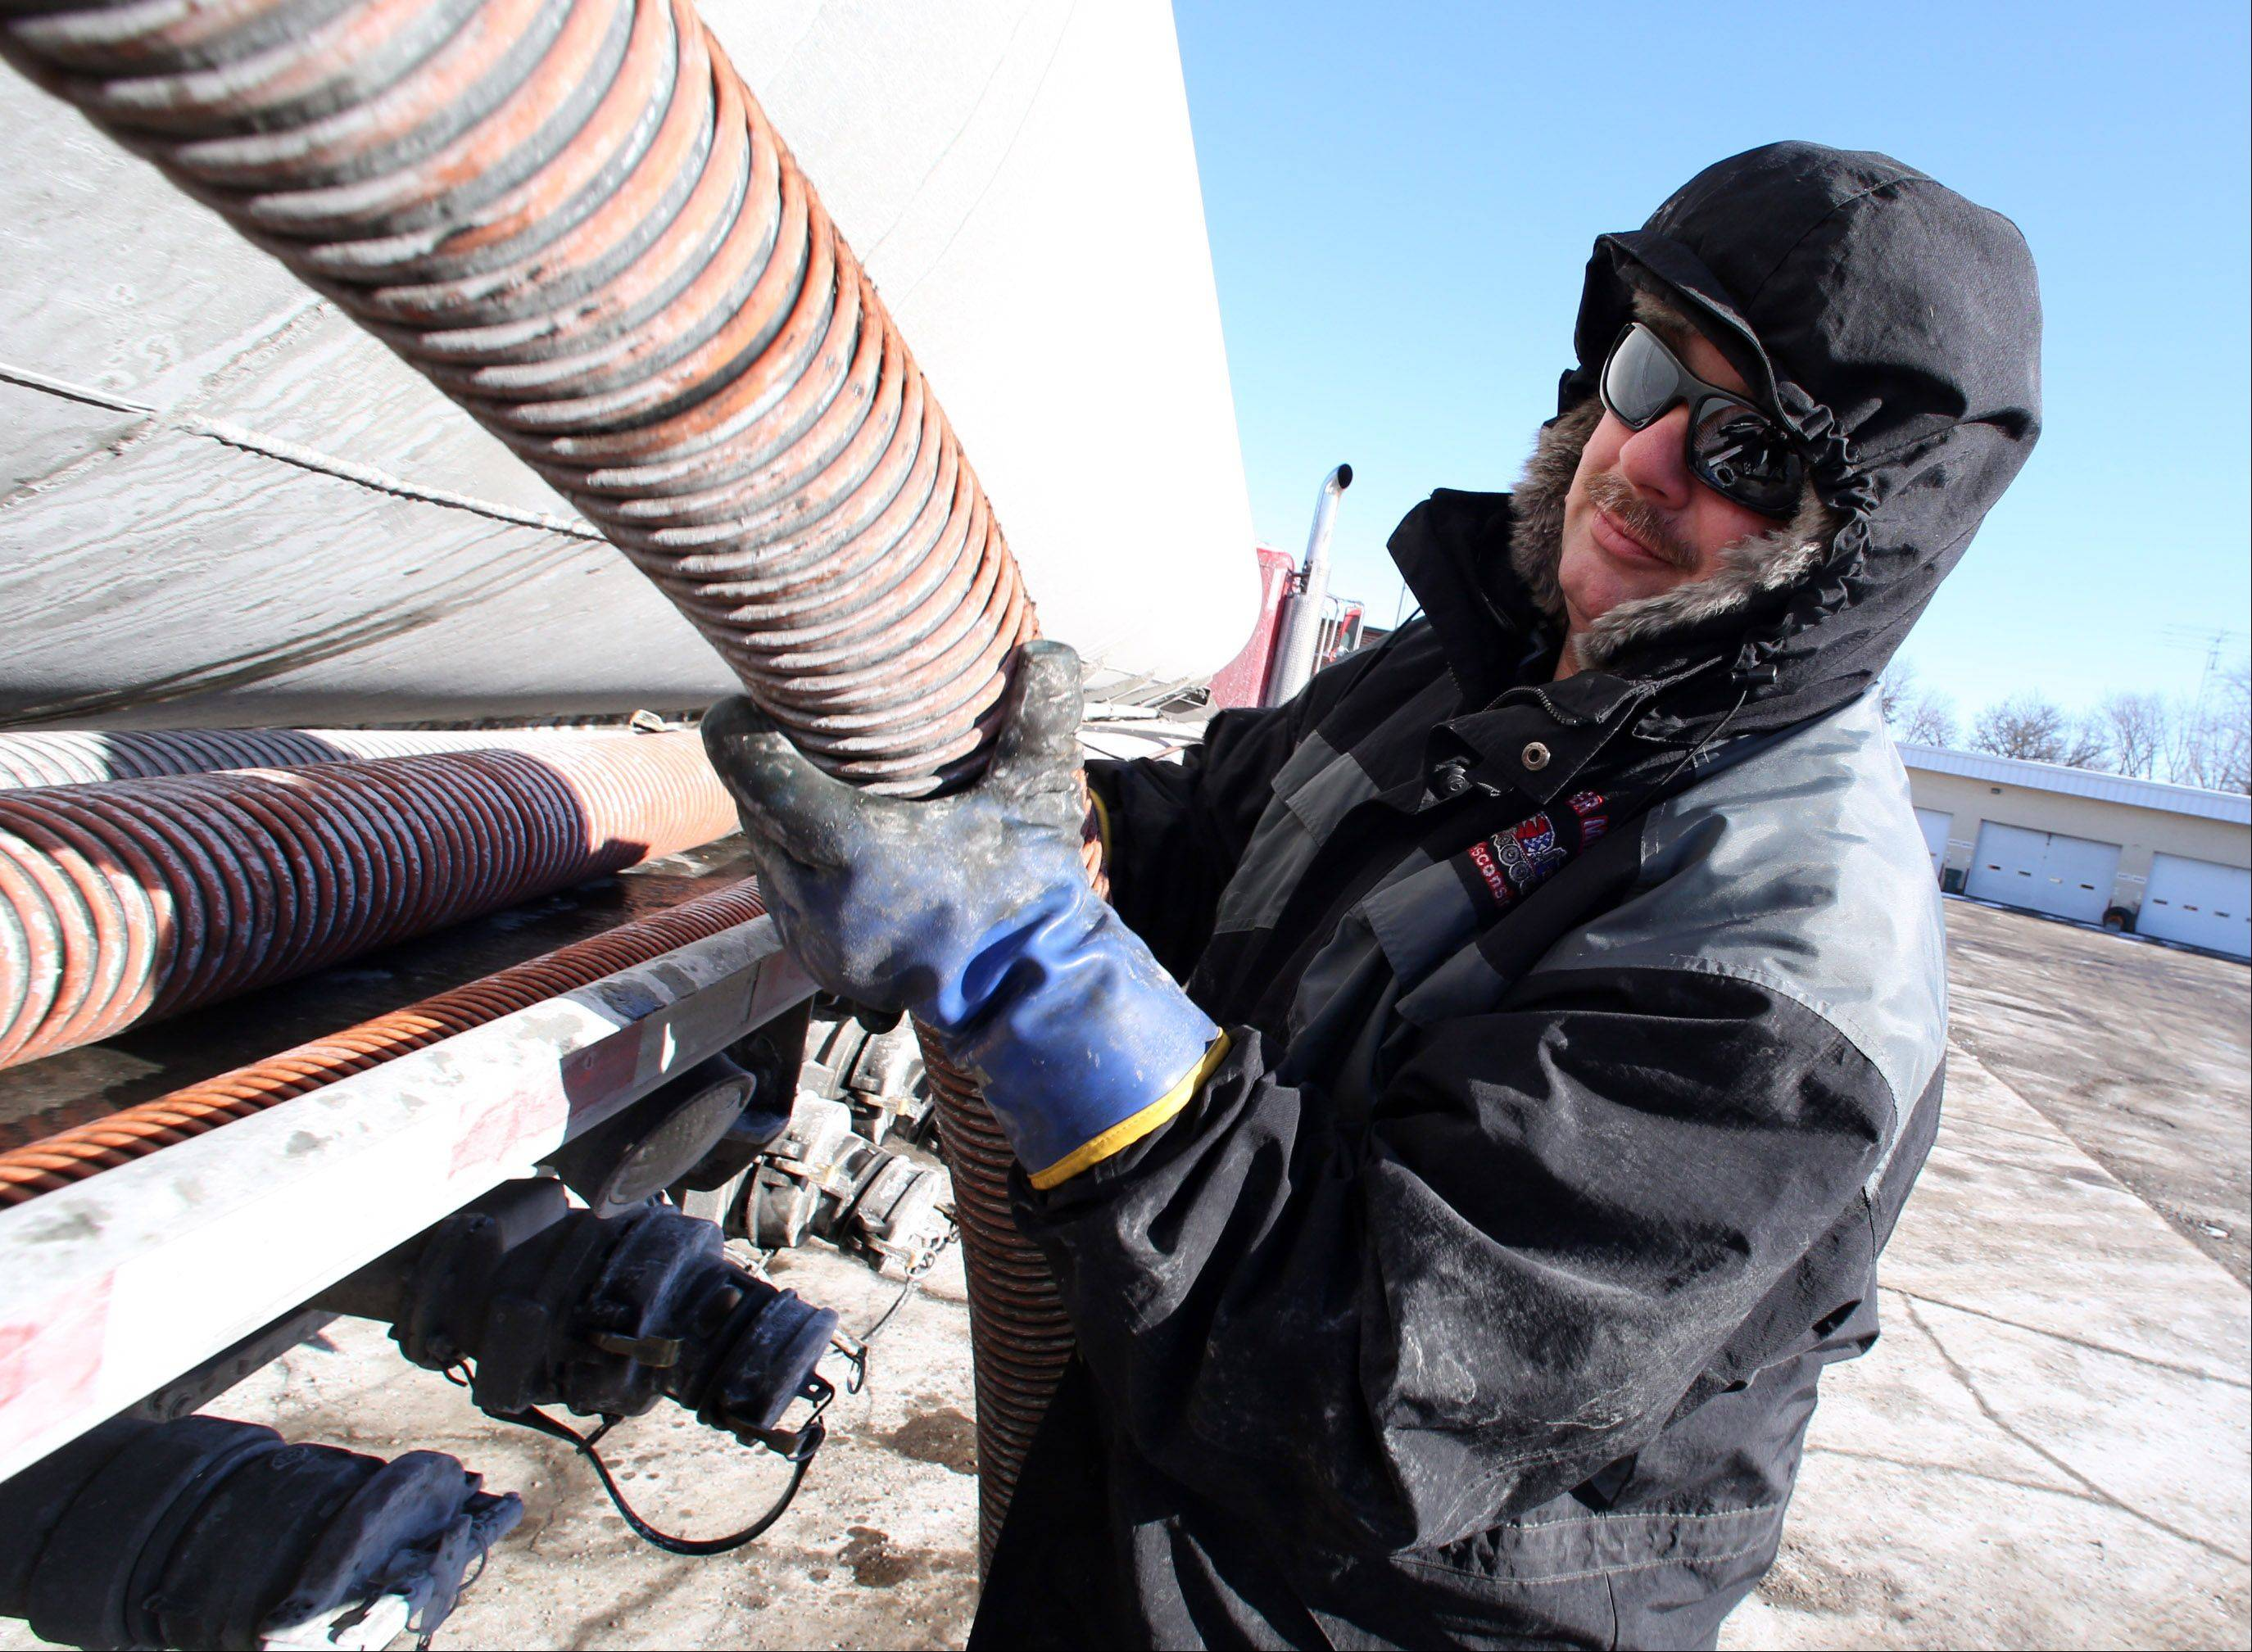 Rob Szymkowski, with Burke Transport Service in Libertyville, places a gas line hose back onto his truck after delivering diesel fuel to the Illinois Department of Transportation on Christmas Eve in Arlington Heights. Szymkowski said unloading the fuel is the coldest and most dangerous part of his job.